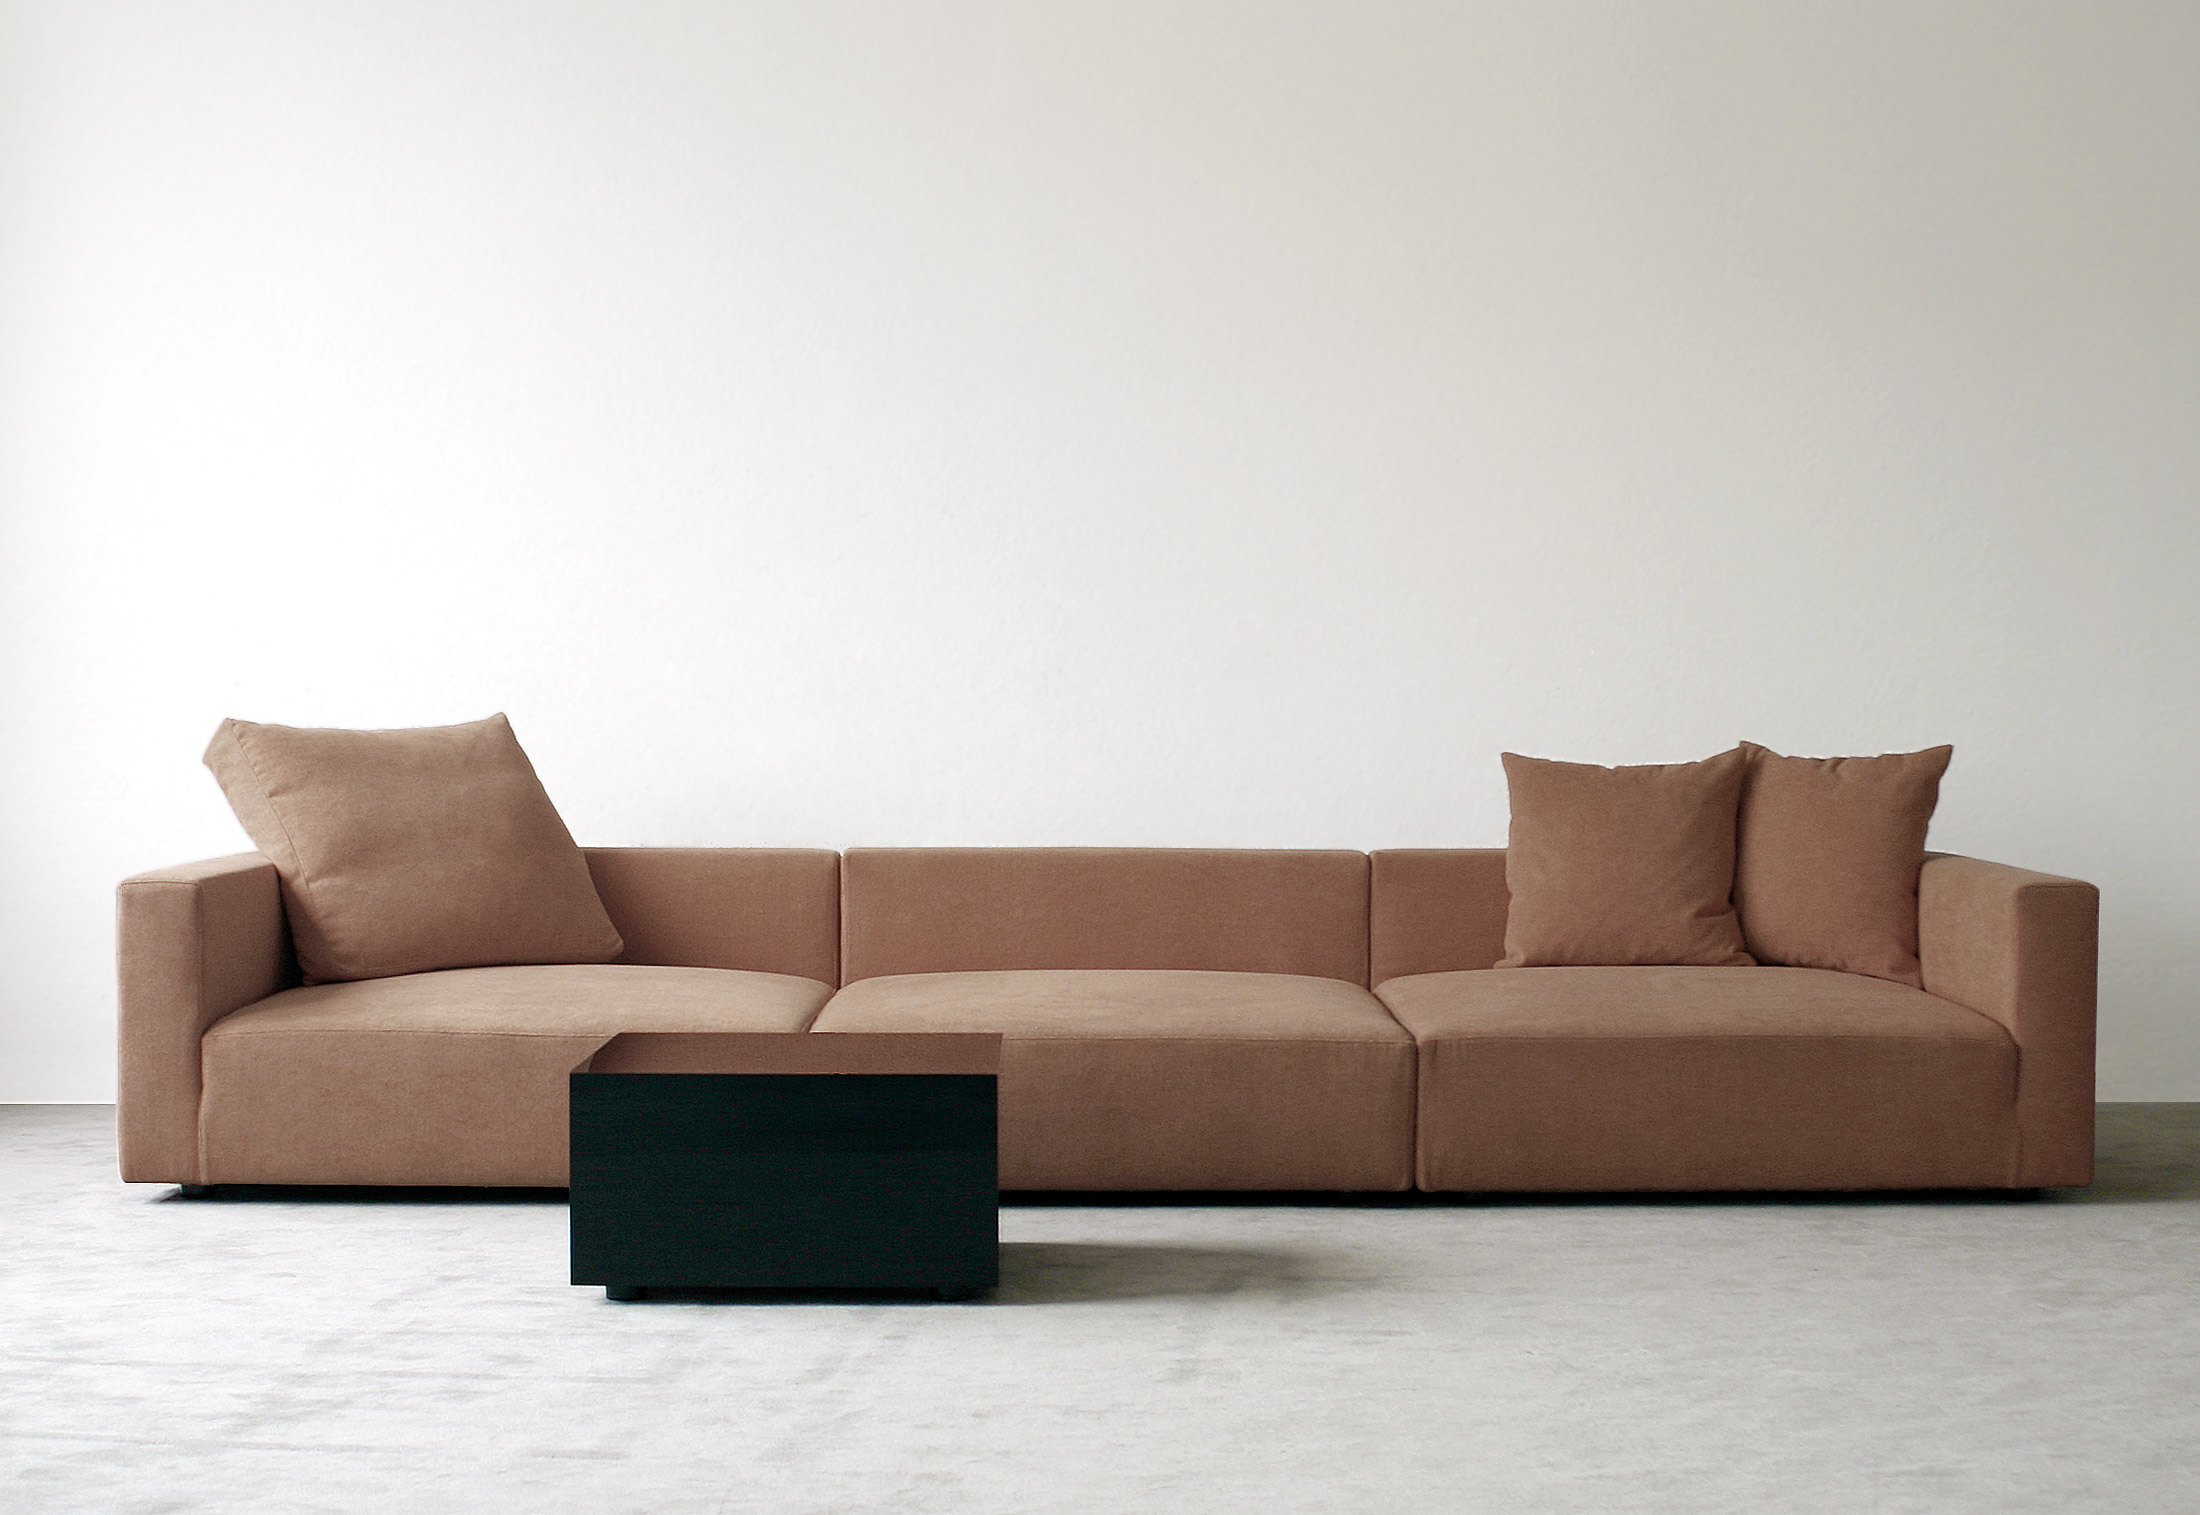 Room And Board Klein Sofa